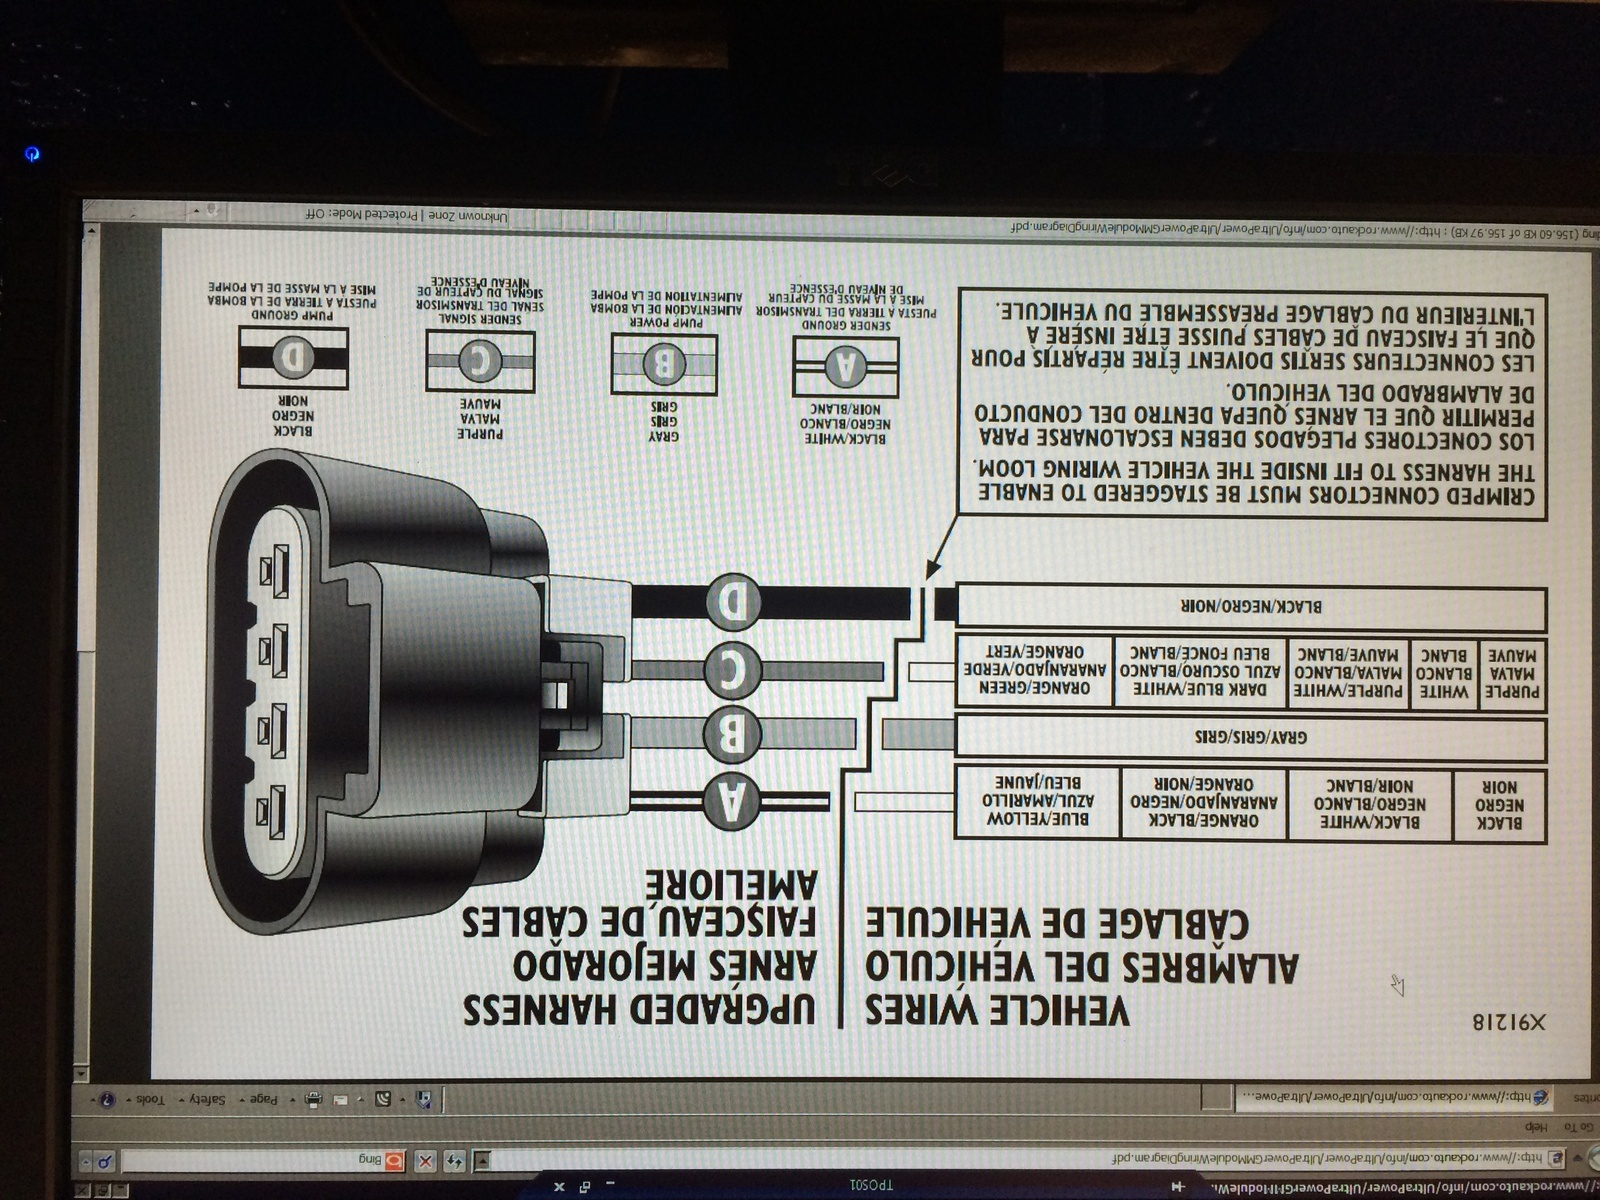 gmc fuel pump wiring diagram gmc wiring diagrams online gmc sierra 1500 questions fuel pump not ening on 1998 gmc